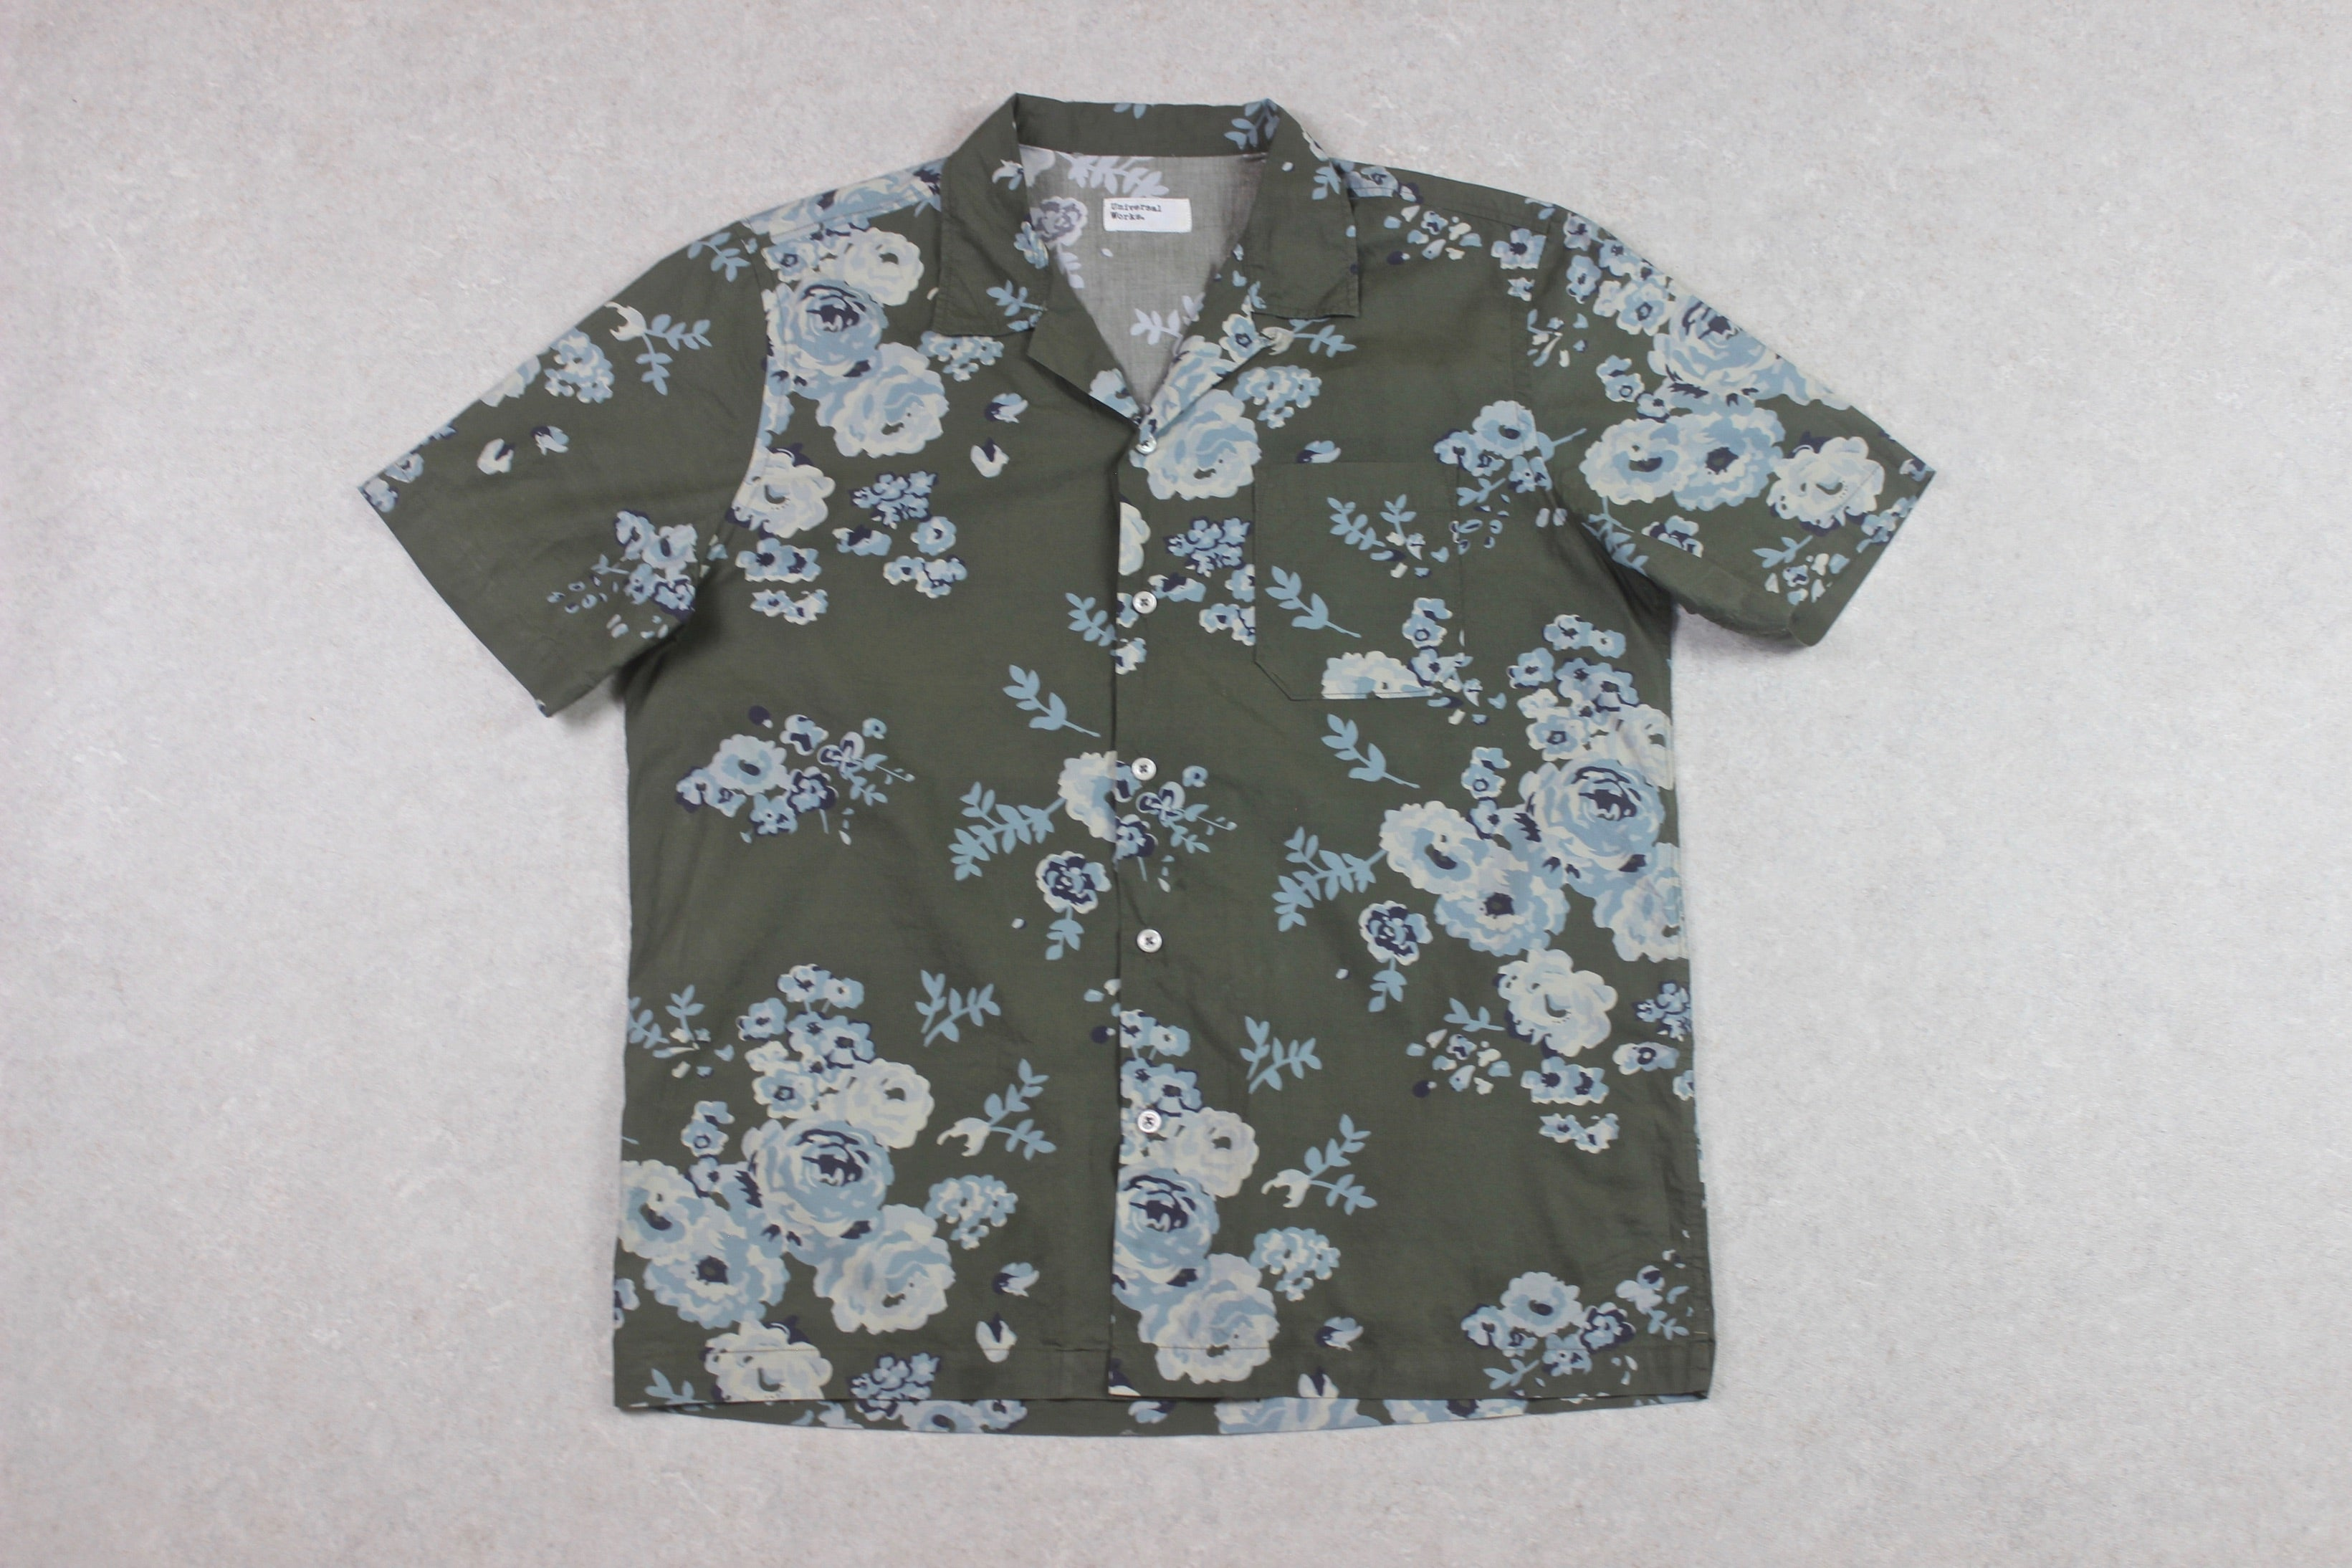 Universal Works - Camp Collar Shirt - Olive Green Floral - Medium